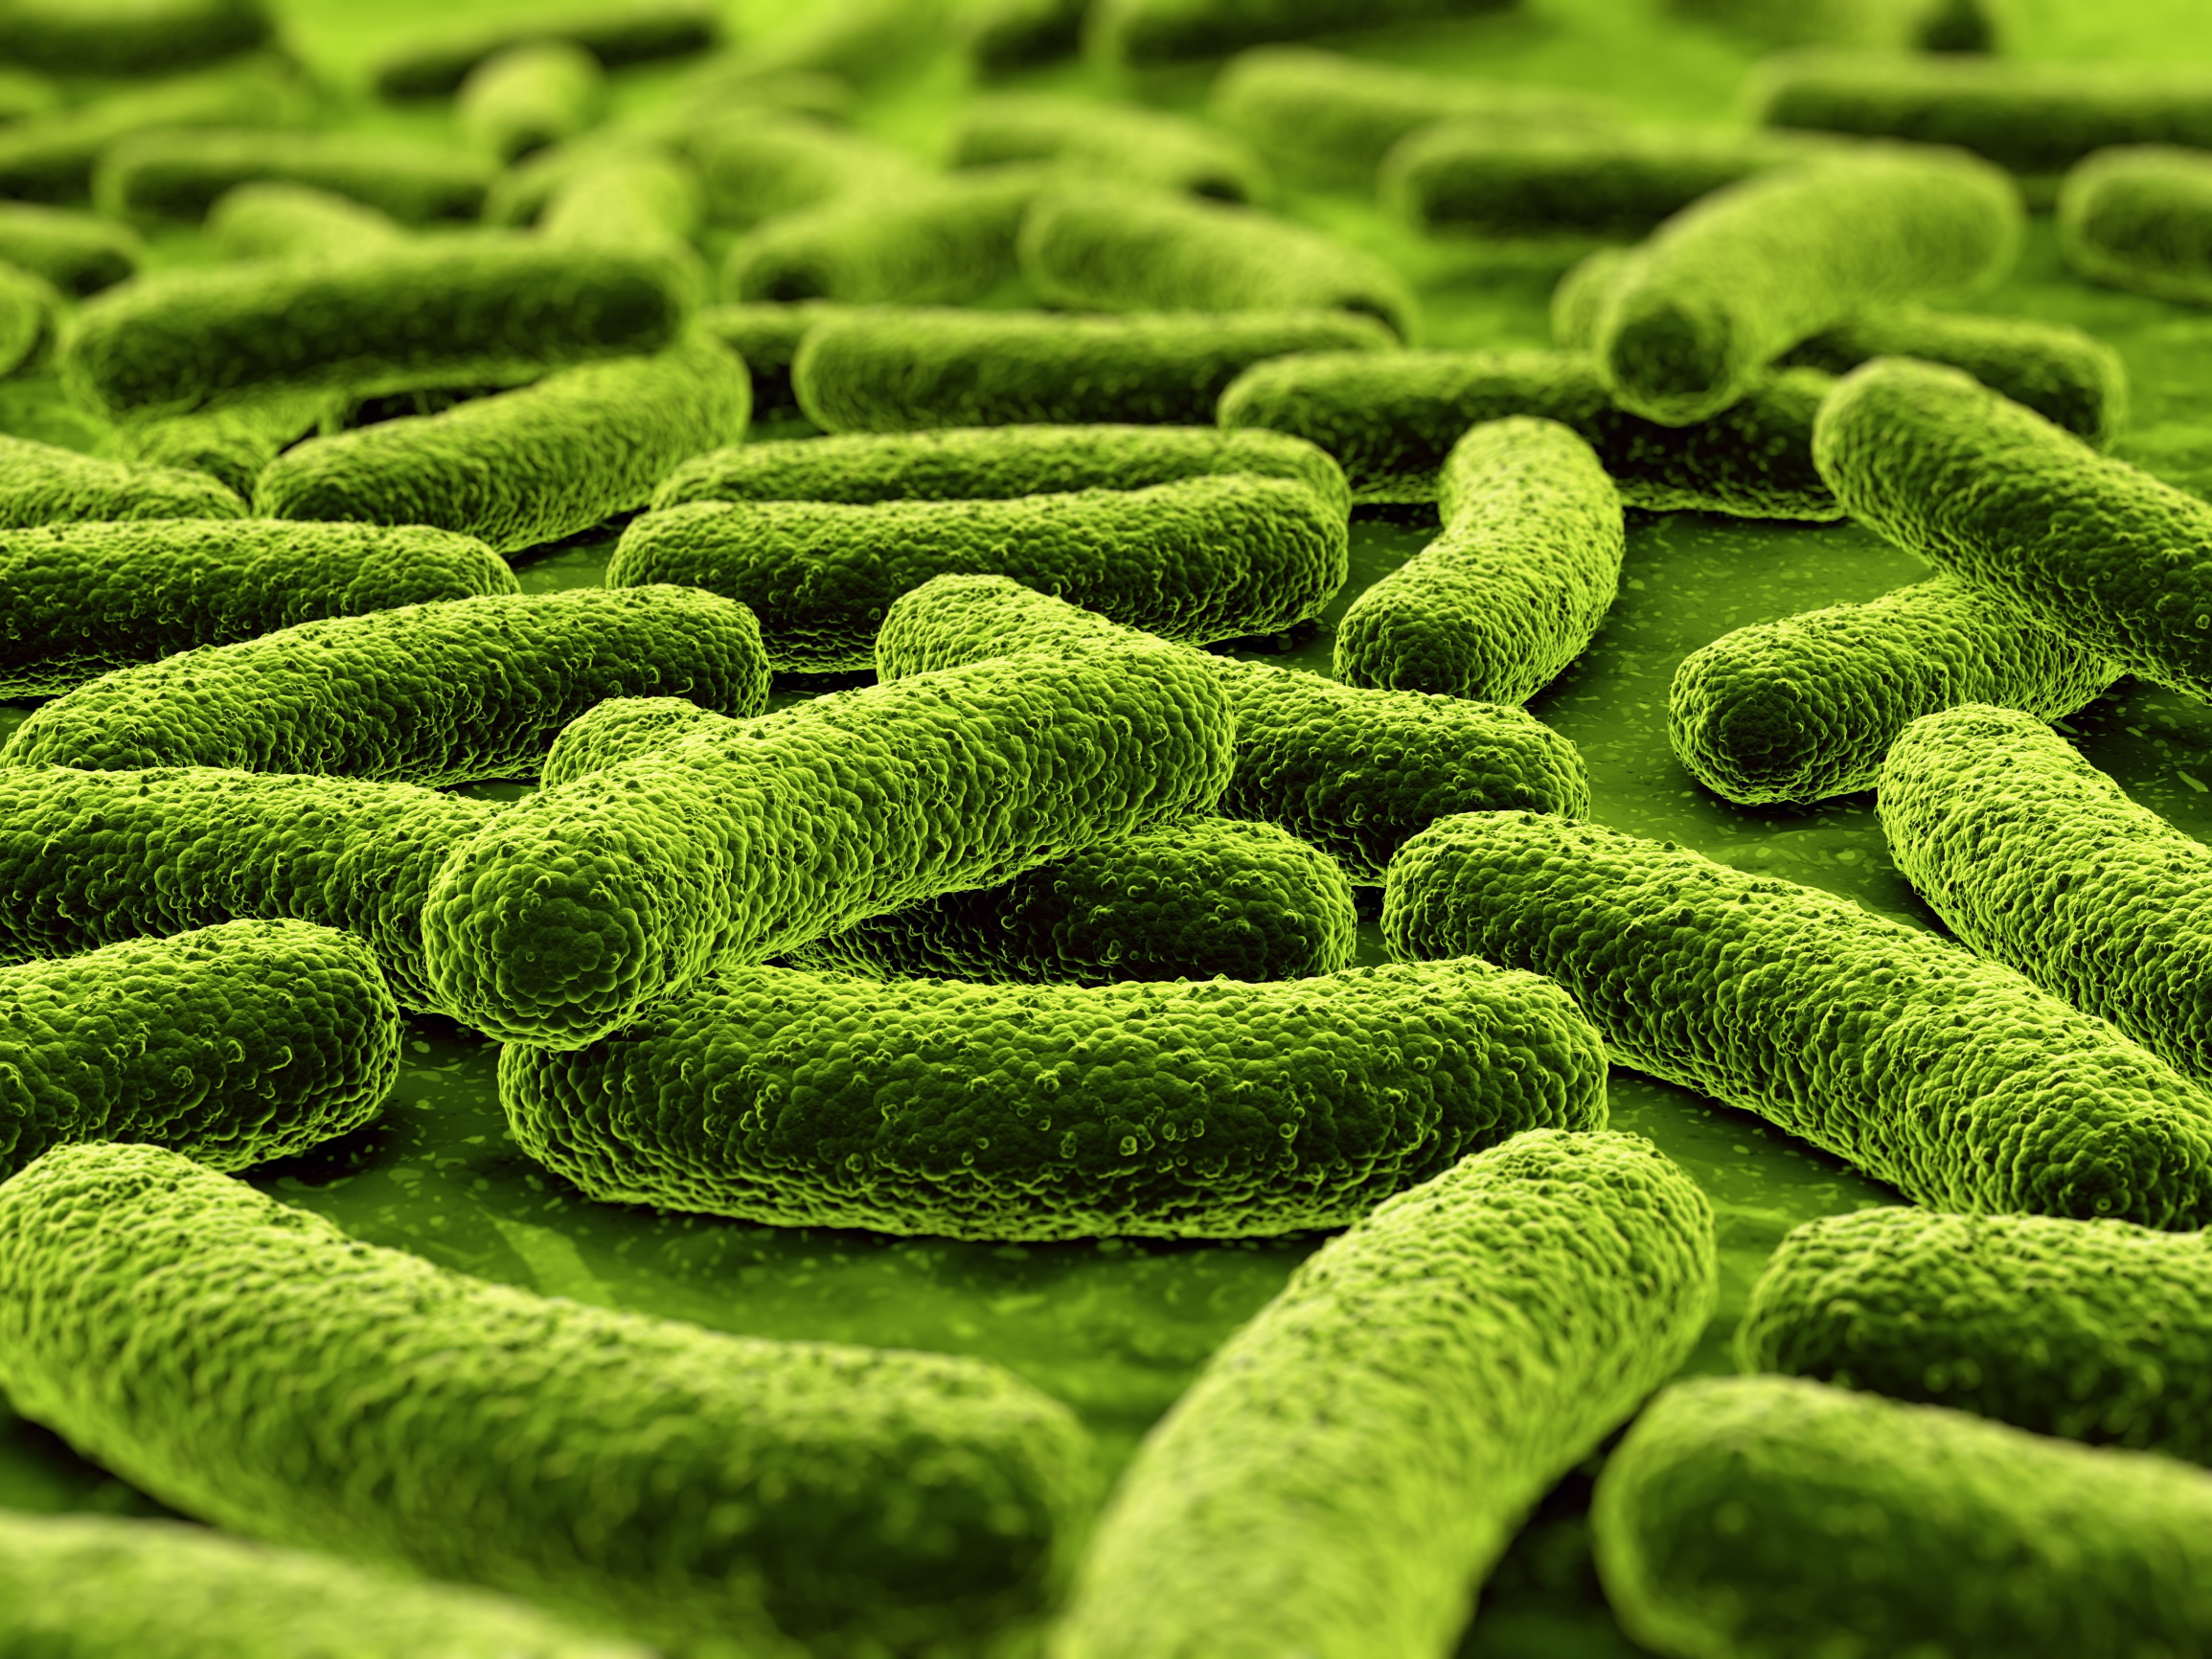 RS7067_sy_green_bacteria_cl_A3397889_clean_2015